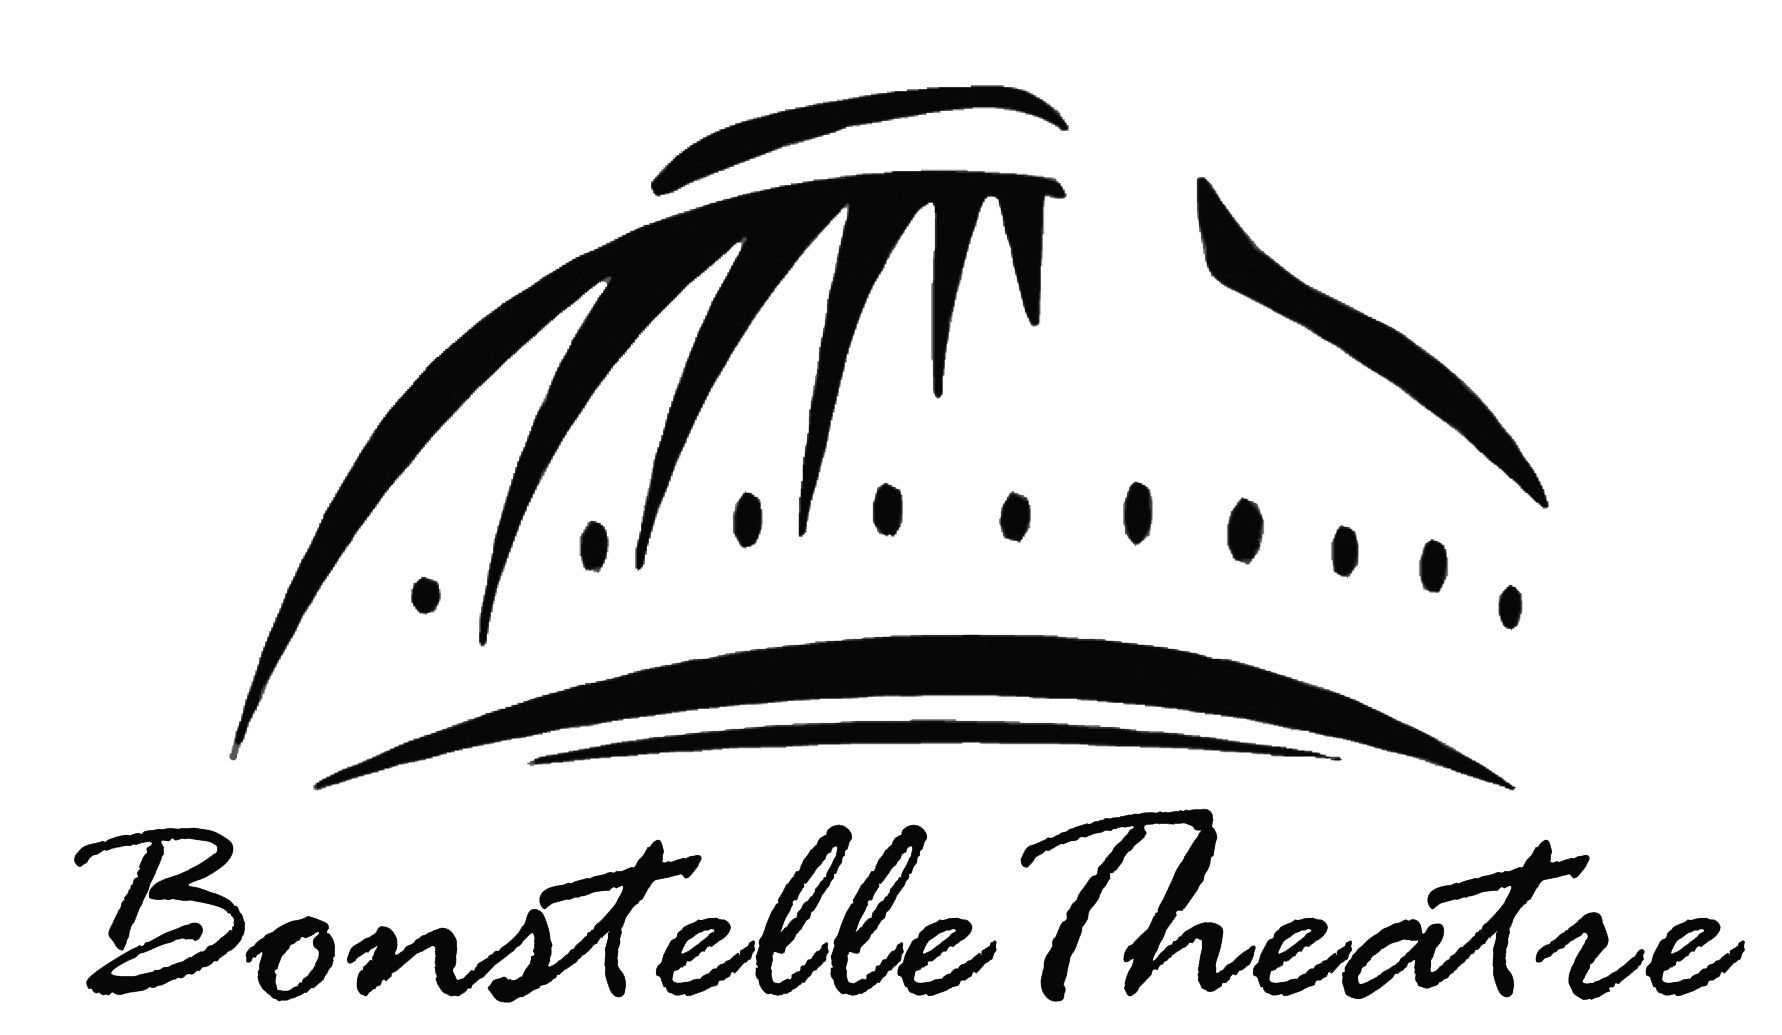 About The Bonstelle Theatre